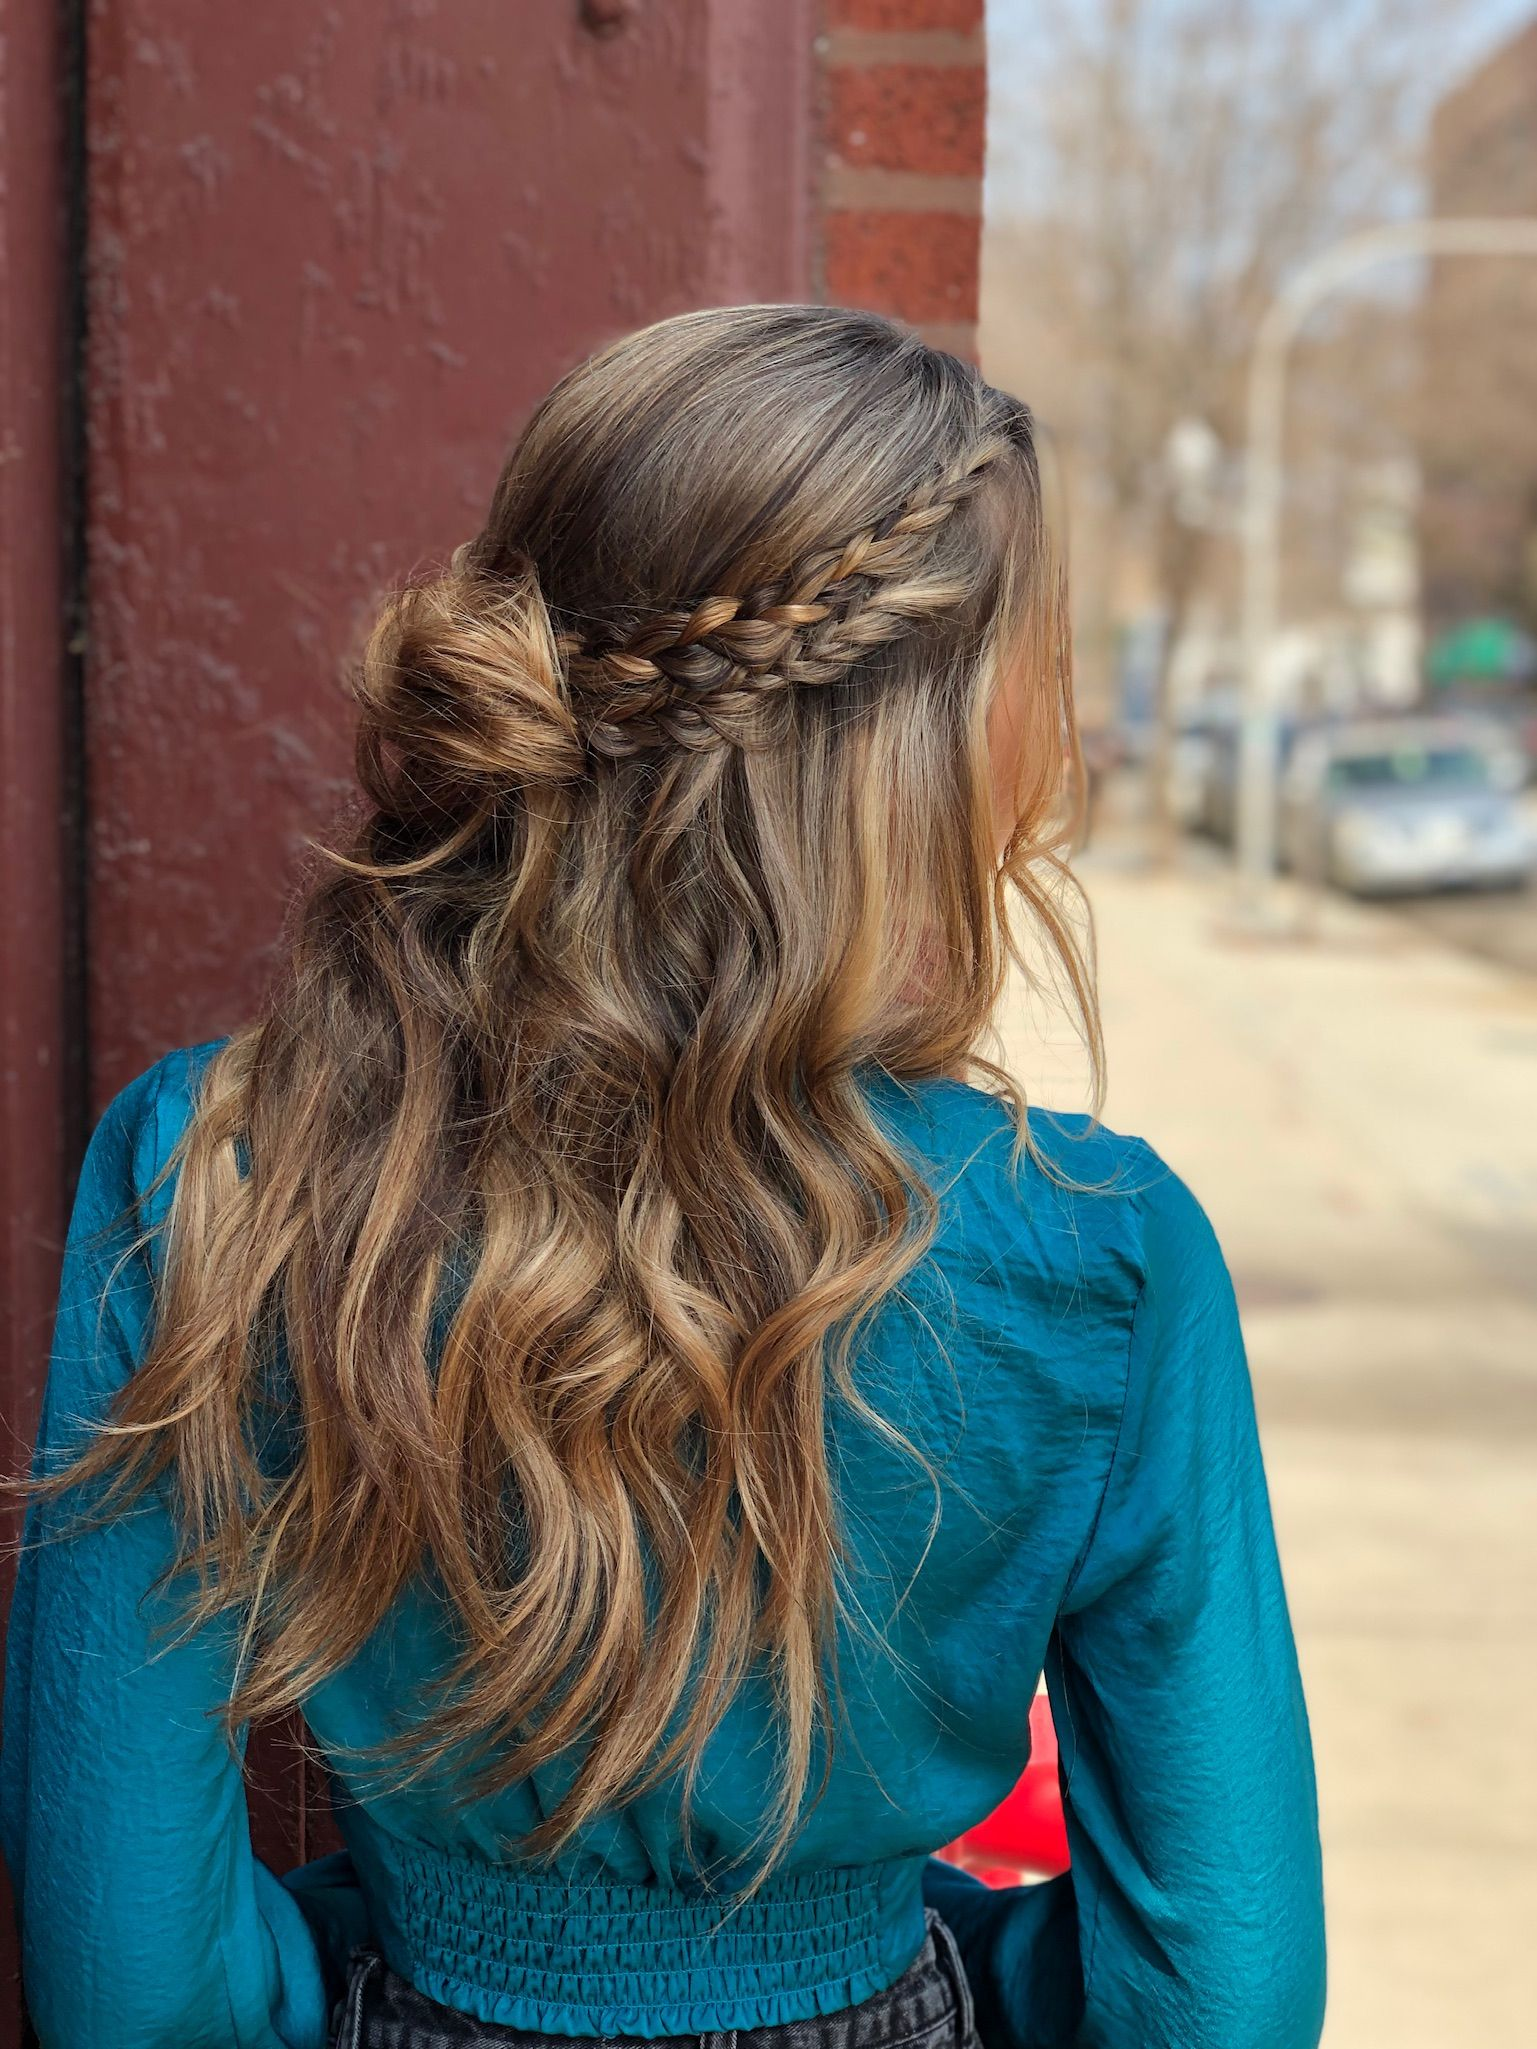 Check Out This Stunning Half Up Half Down Hairstyle With Boho Braids A Messy Bun Waves Our Stylists Are So Tale Bun With Curls Half Up Hair Braided Half Up